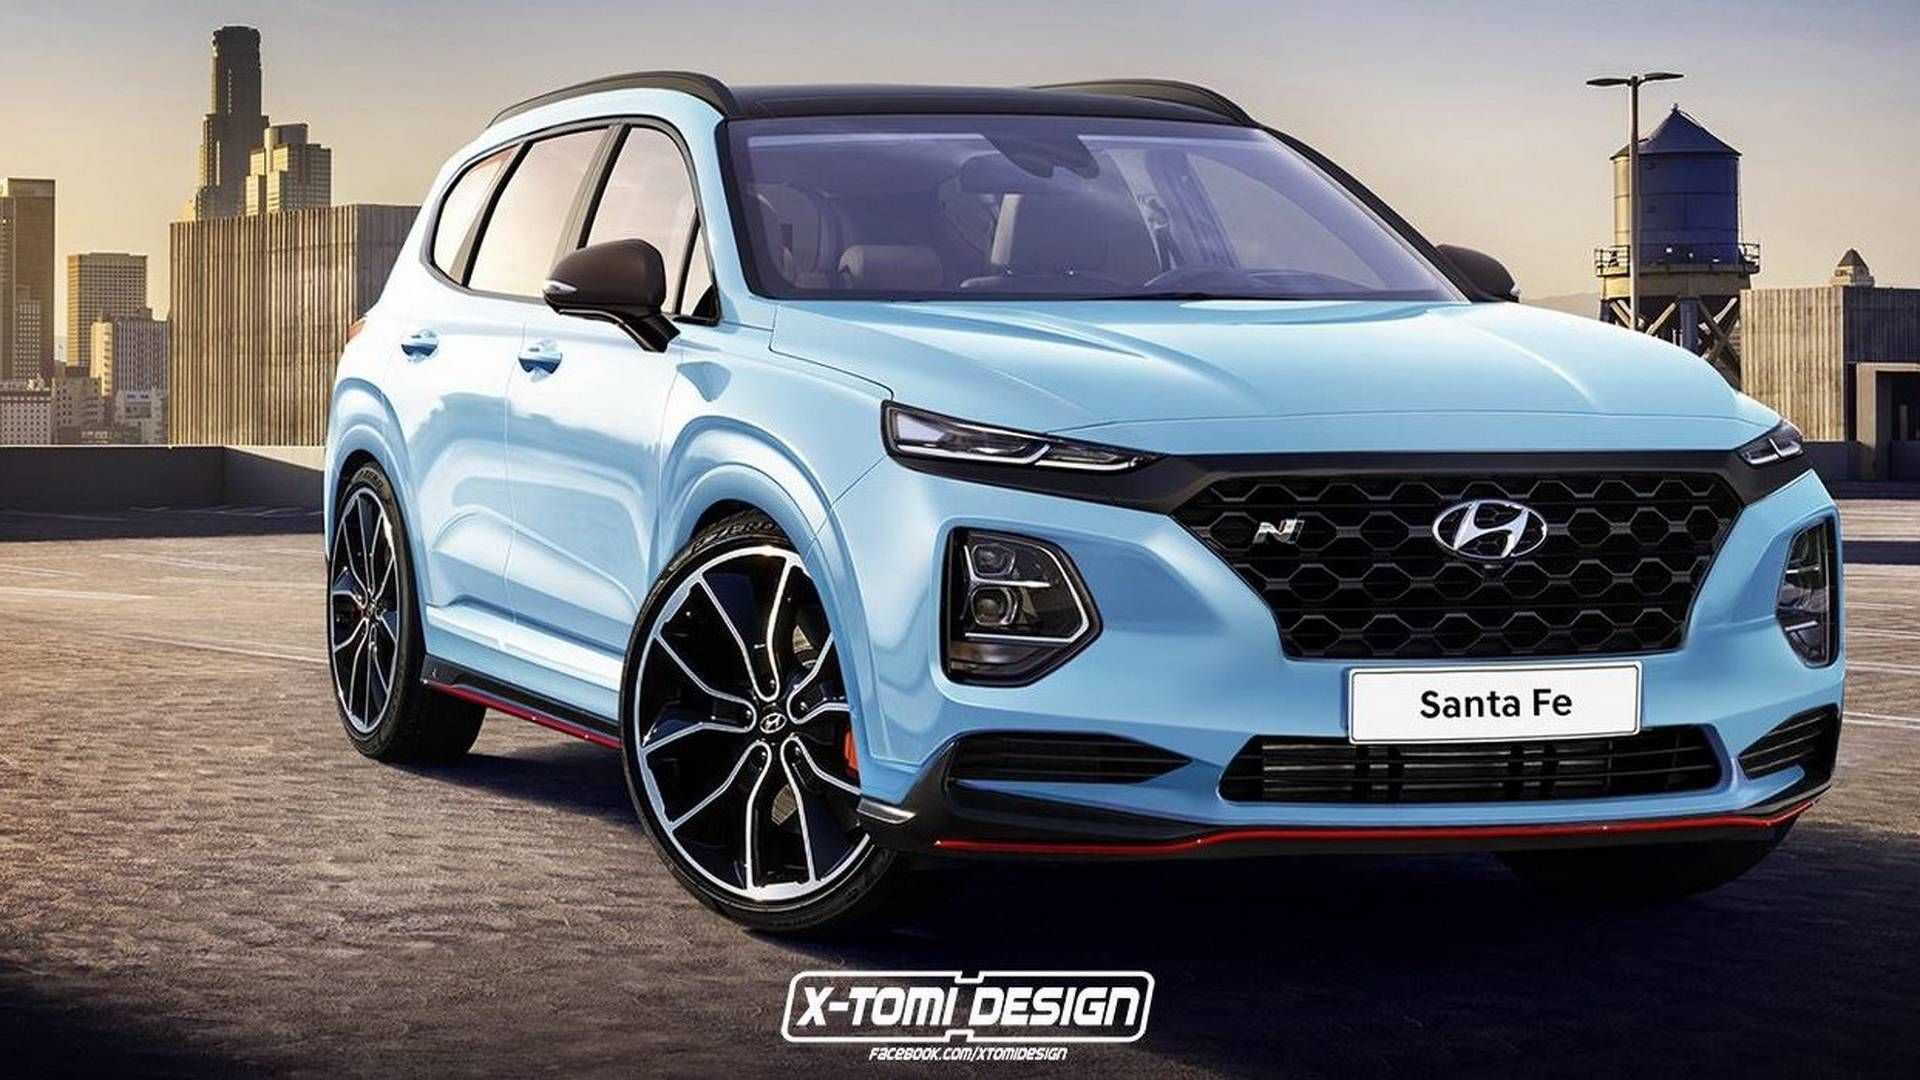 When Do The 2021 Lexus Cars Come Out In 2020 Hyundai Santa Fe